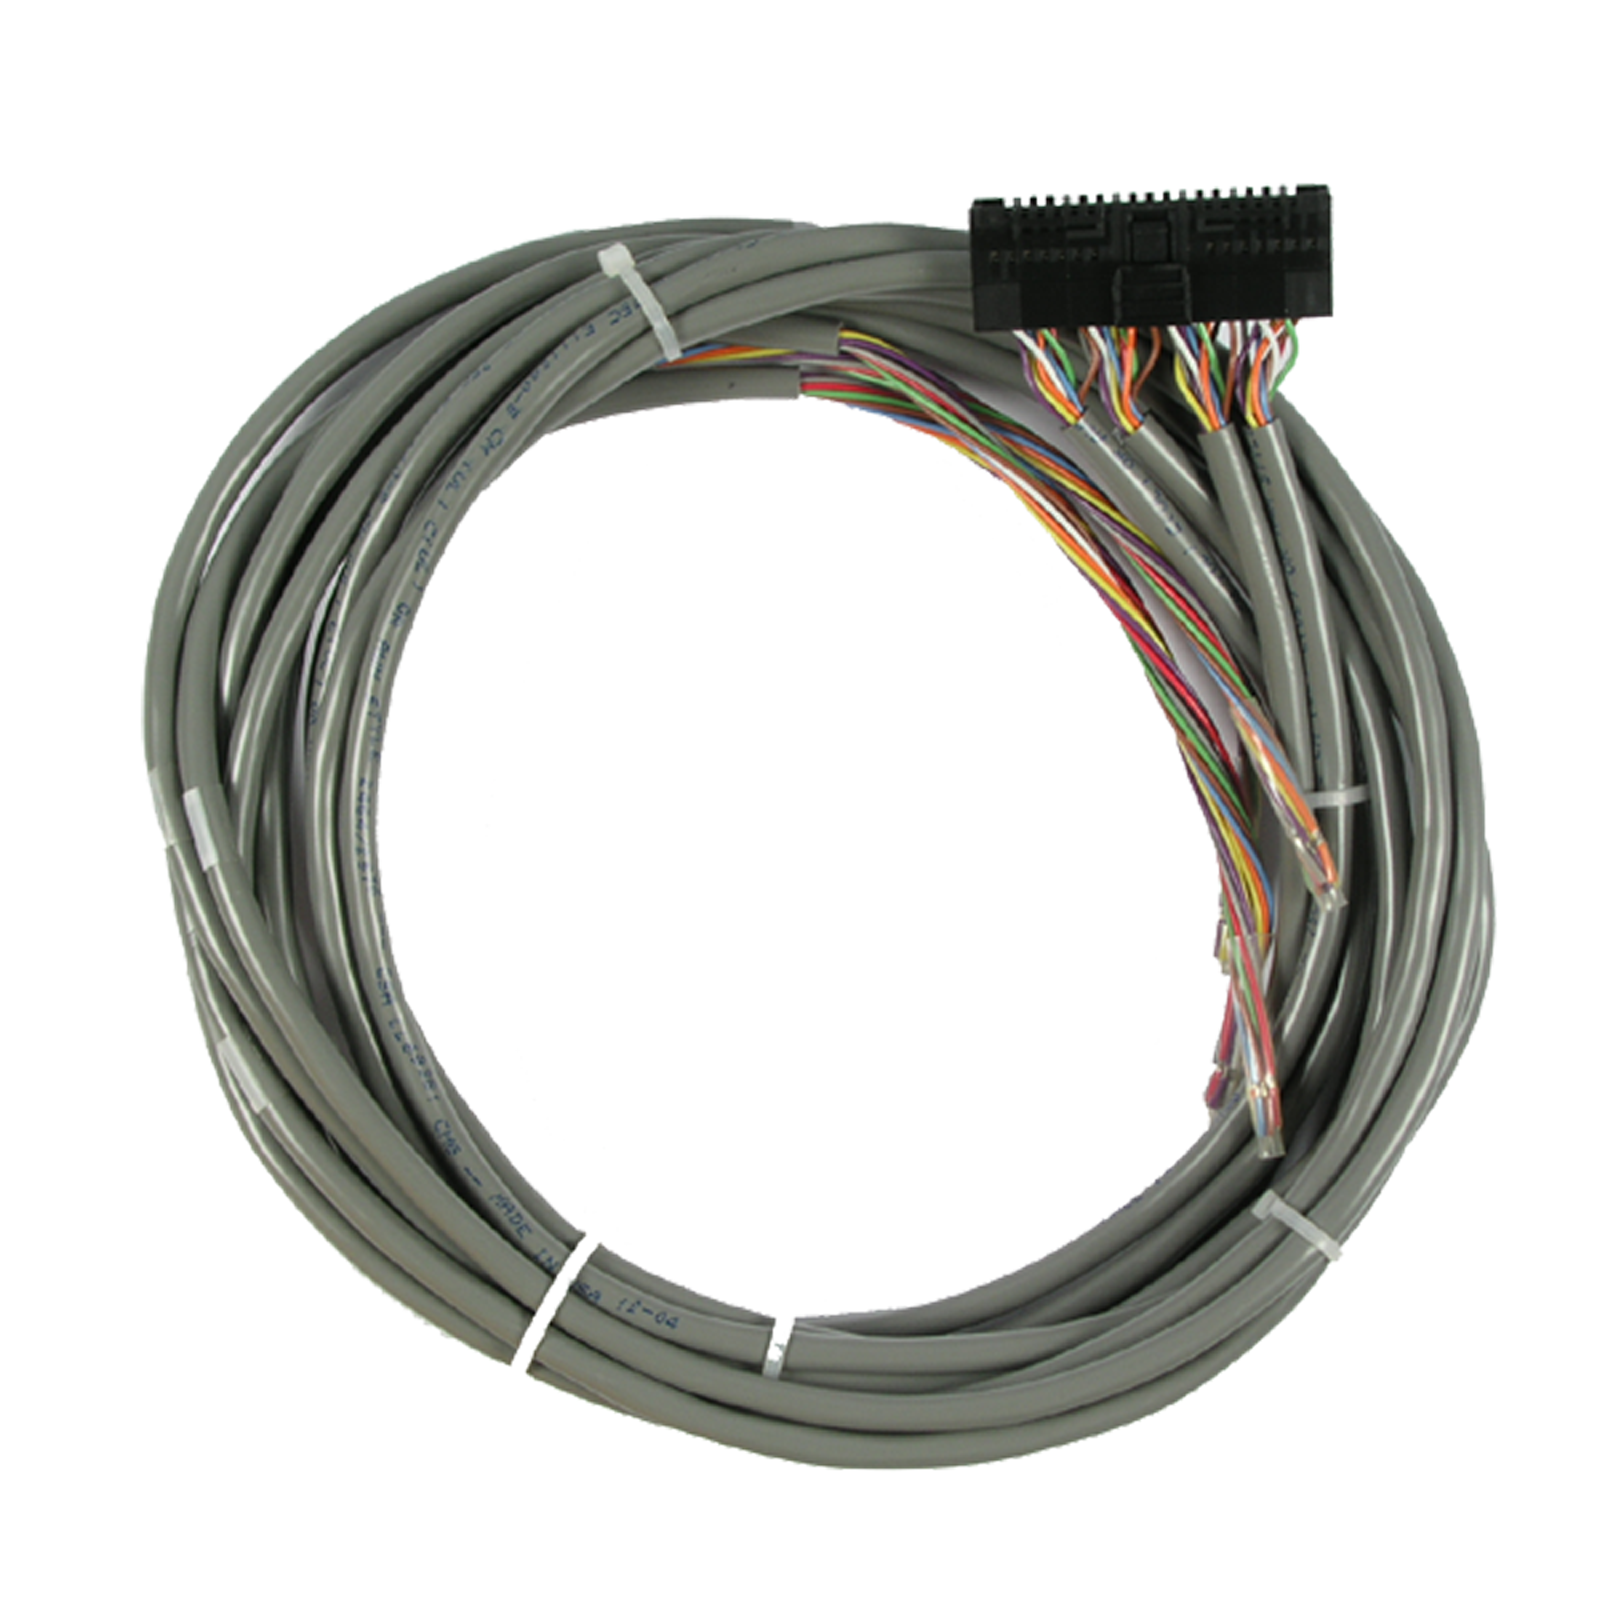 opto22 snap hd cbf6 wiring harness with flying leads for snap 32 rh opto22 com it's a snap wiring harness diagram